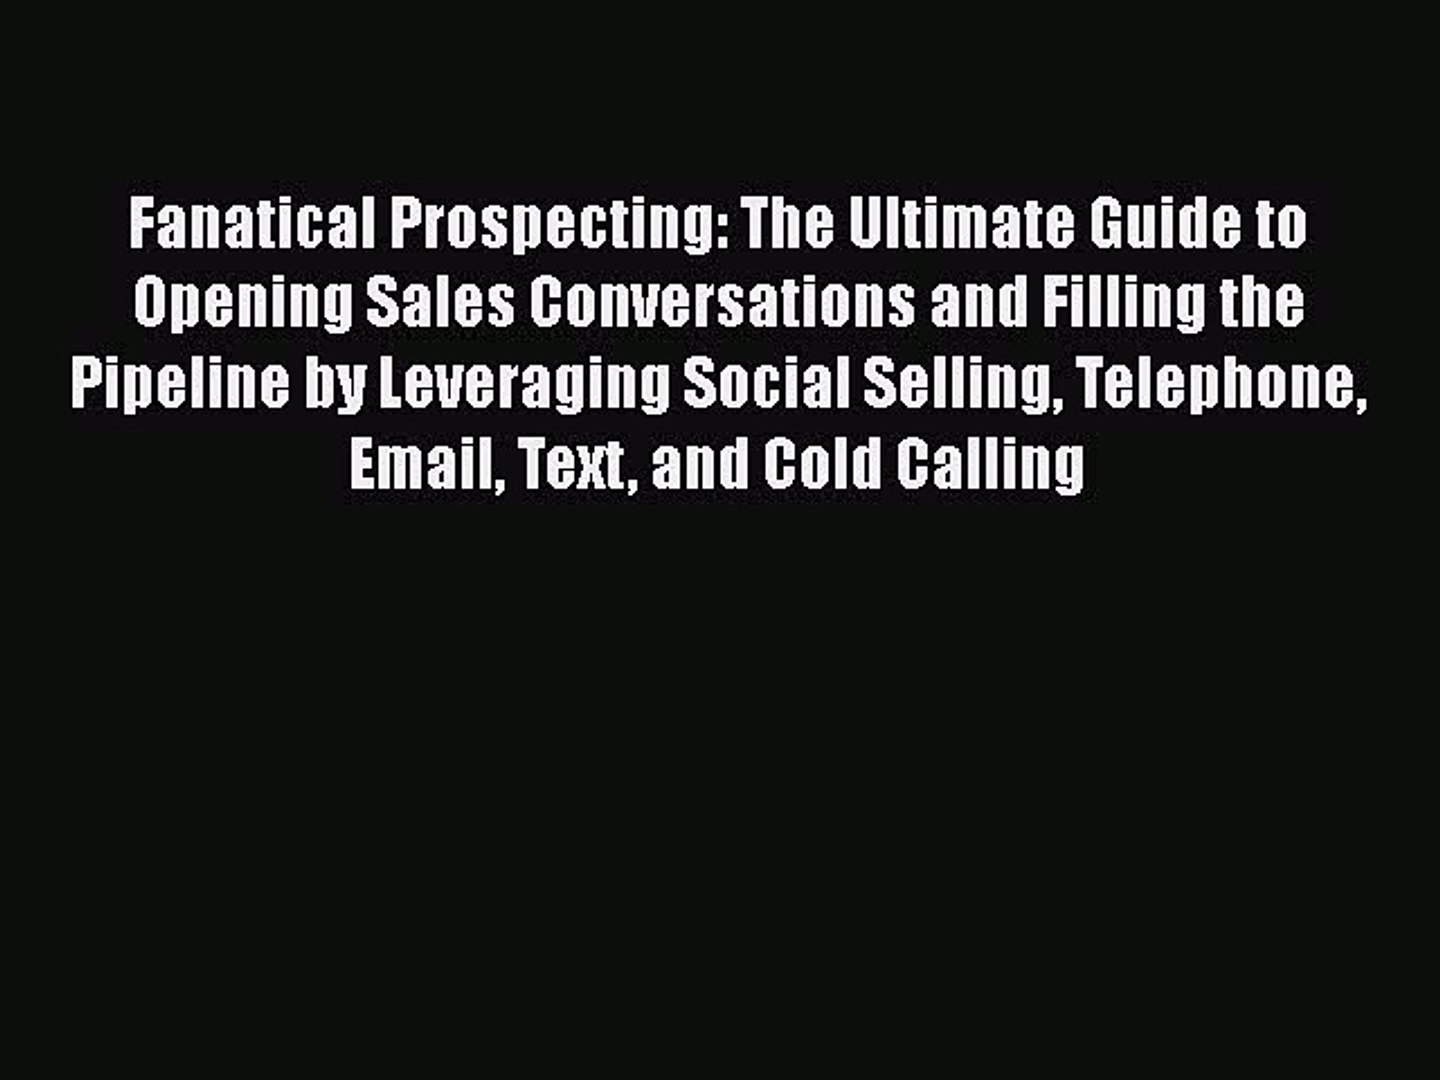 Pdf Fanatical Prospecting The Ultimate Guide To Opening Sales Conversations And Filling Video Dailymotion